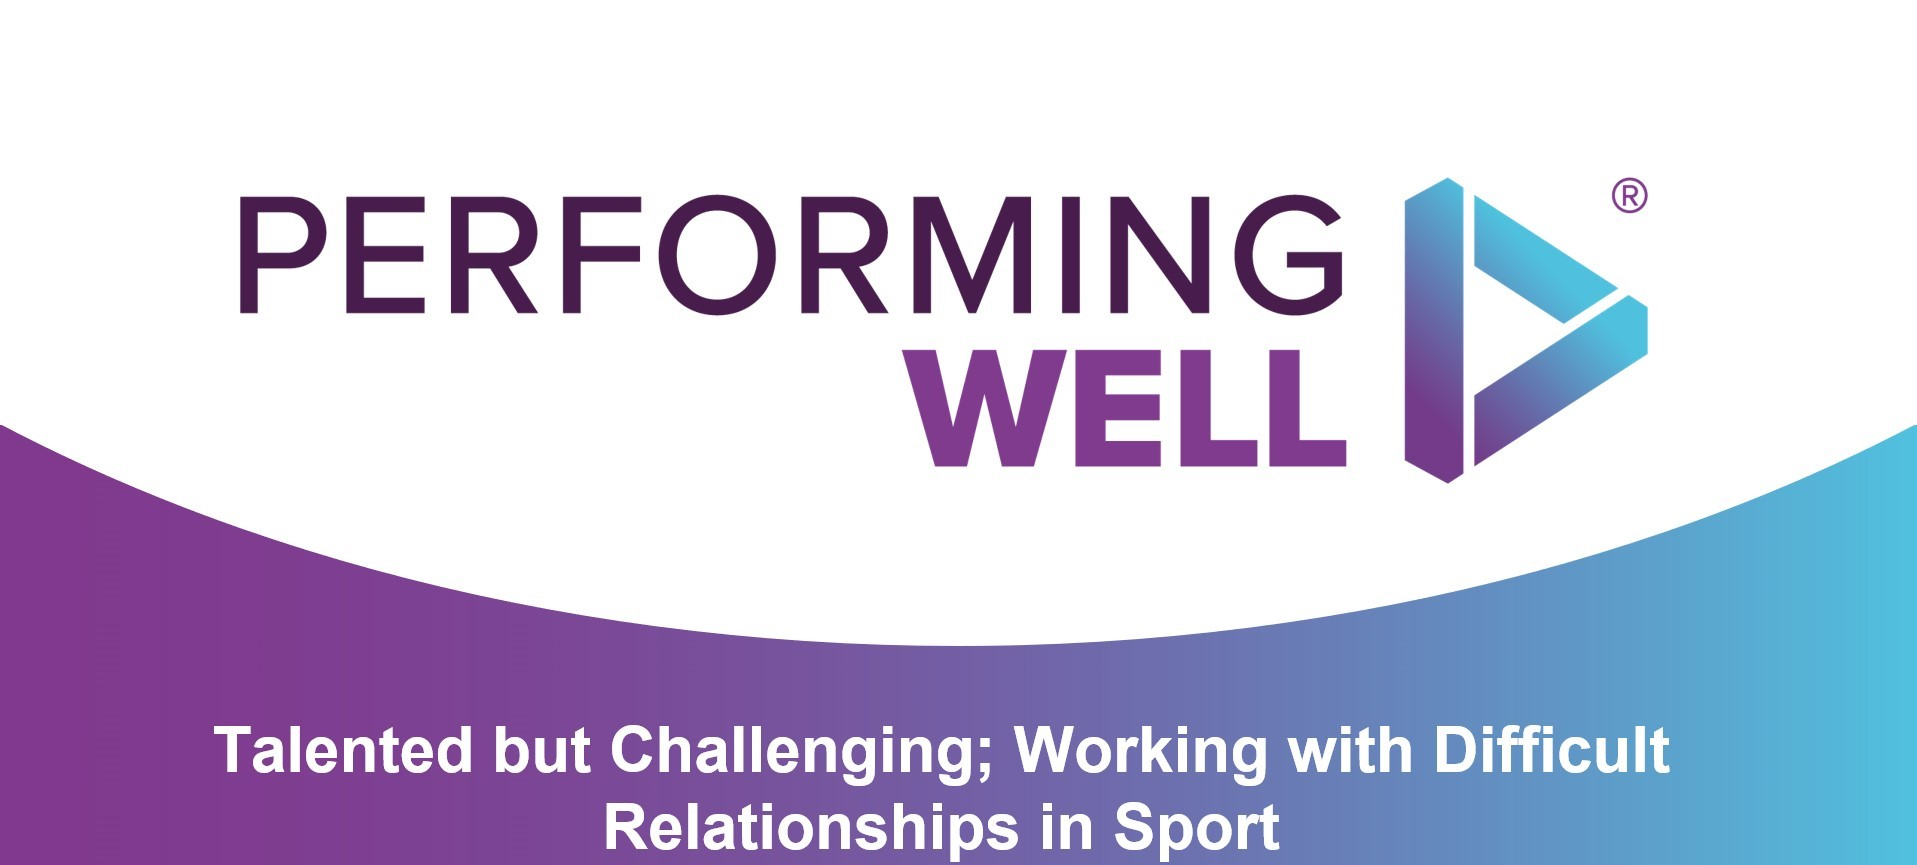 Talented but Challenging: Working with Difficult Relationships In Sport